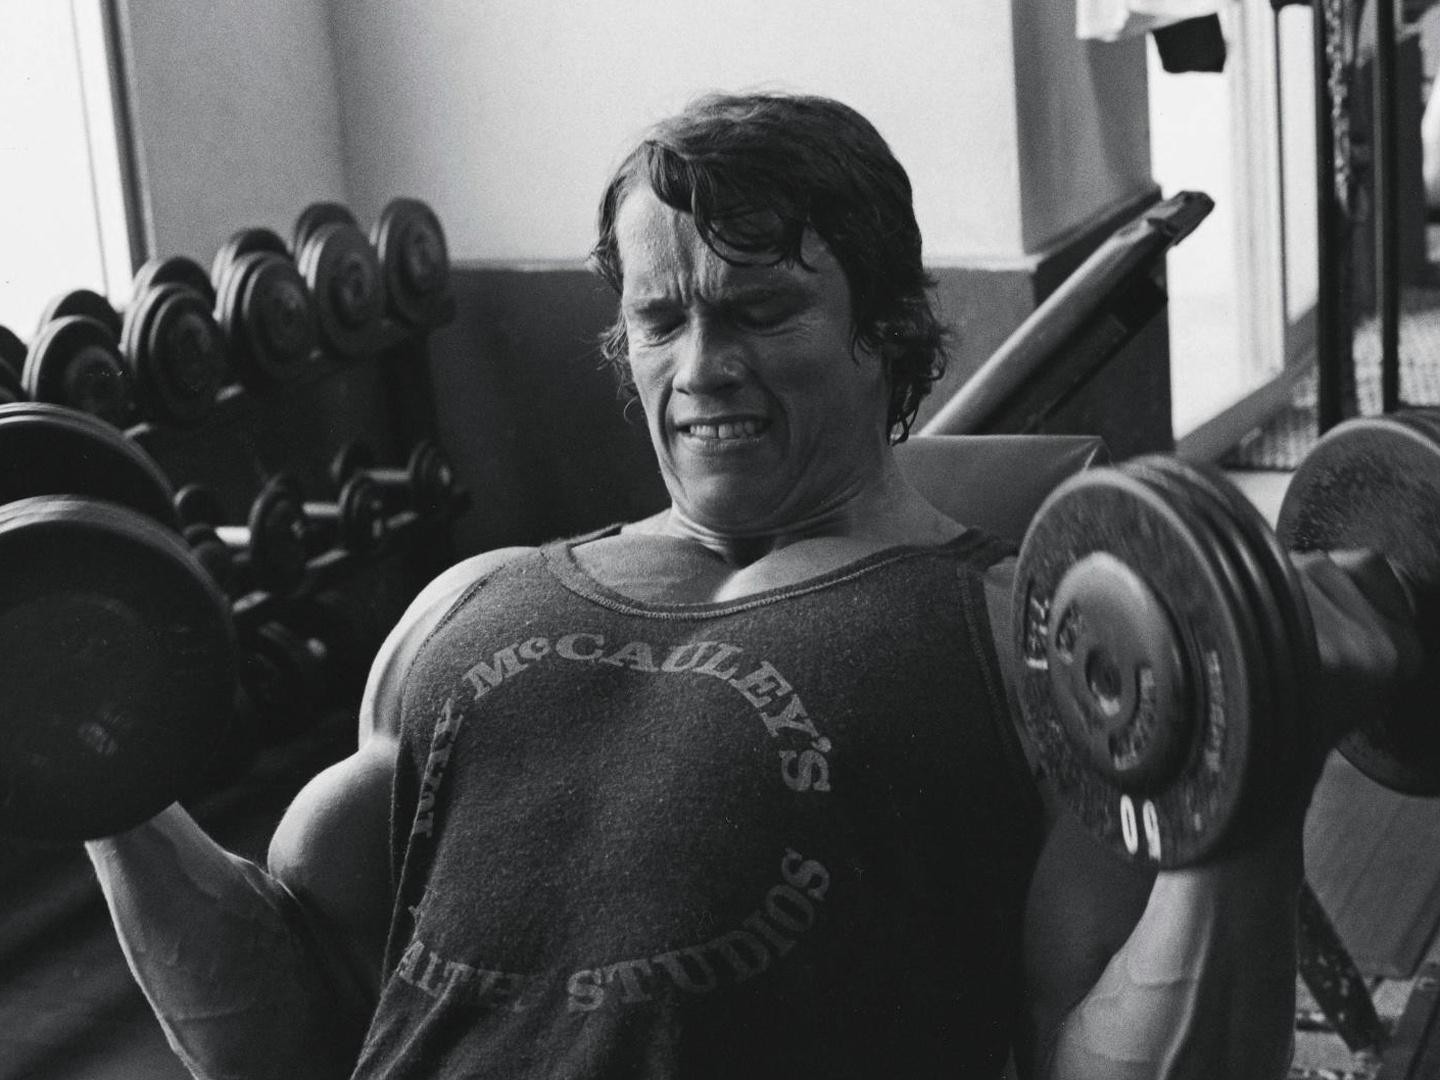 1440x1080_arnold-schwarzenegger-sports-bodybuilding-dumbbells